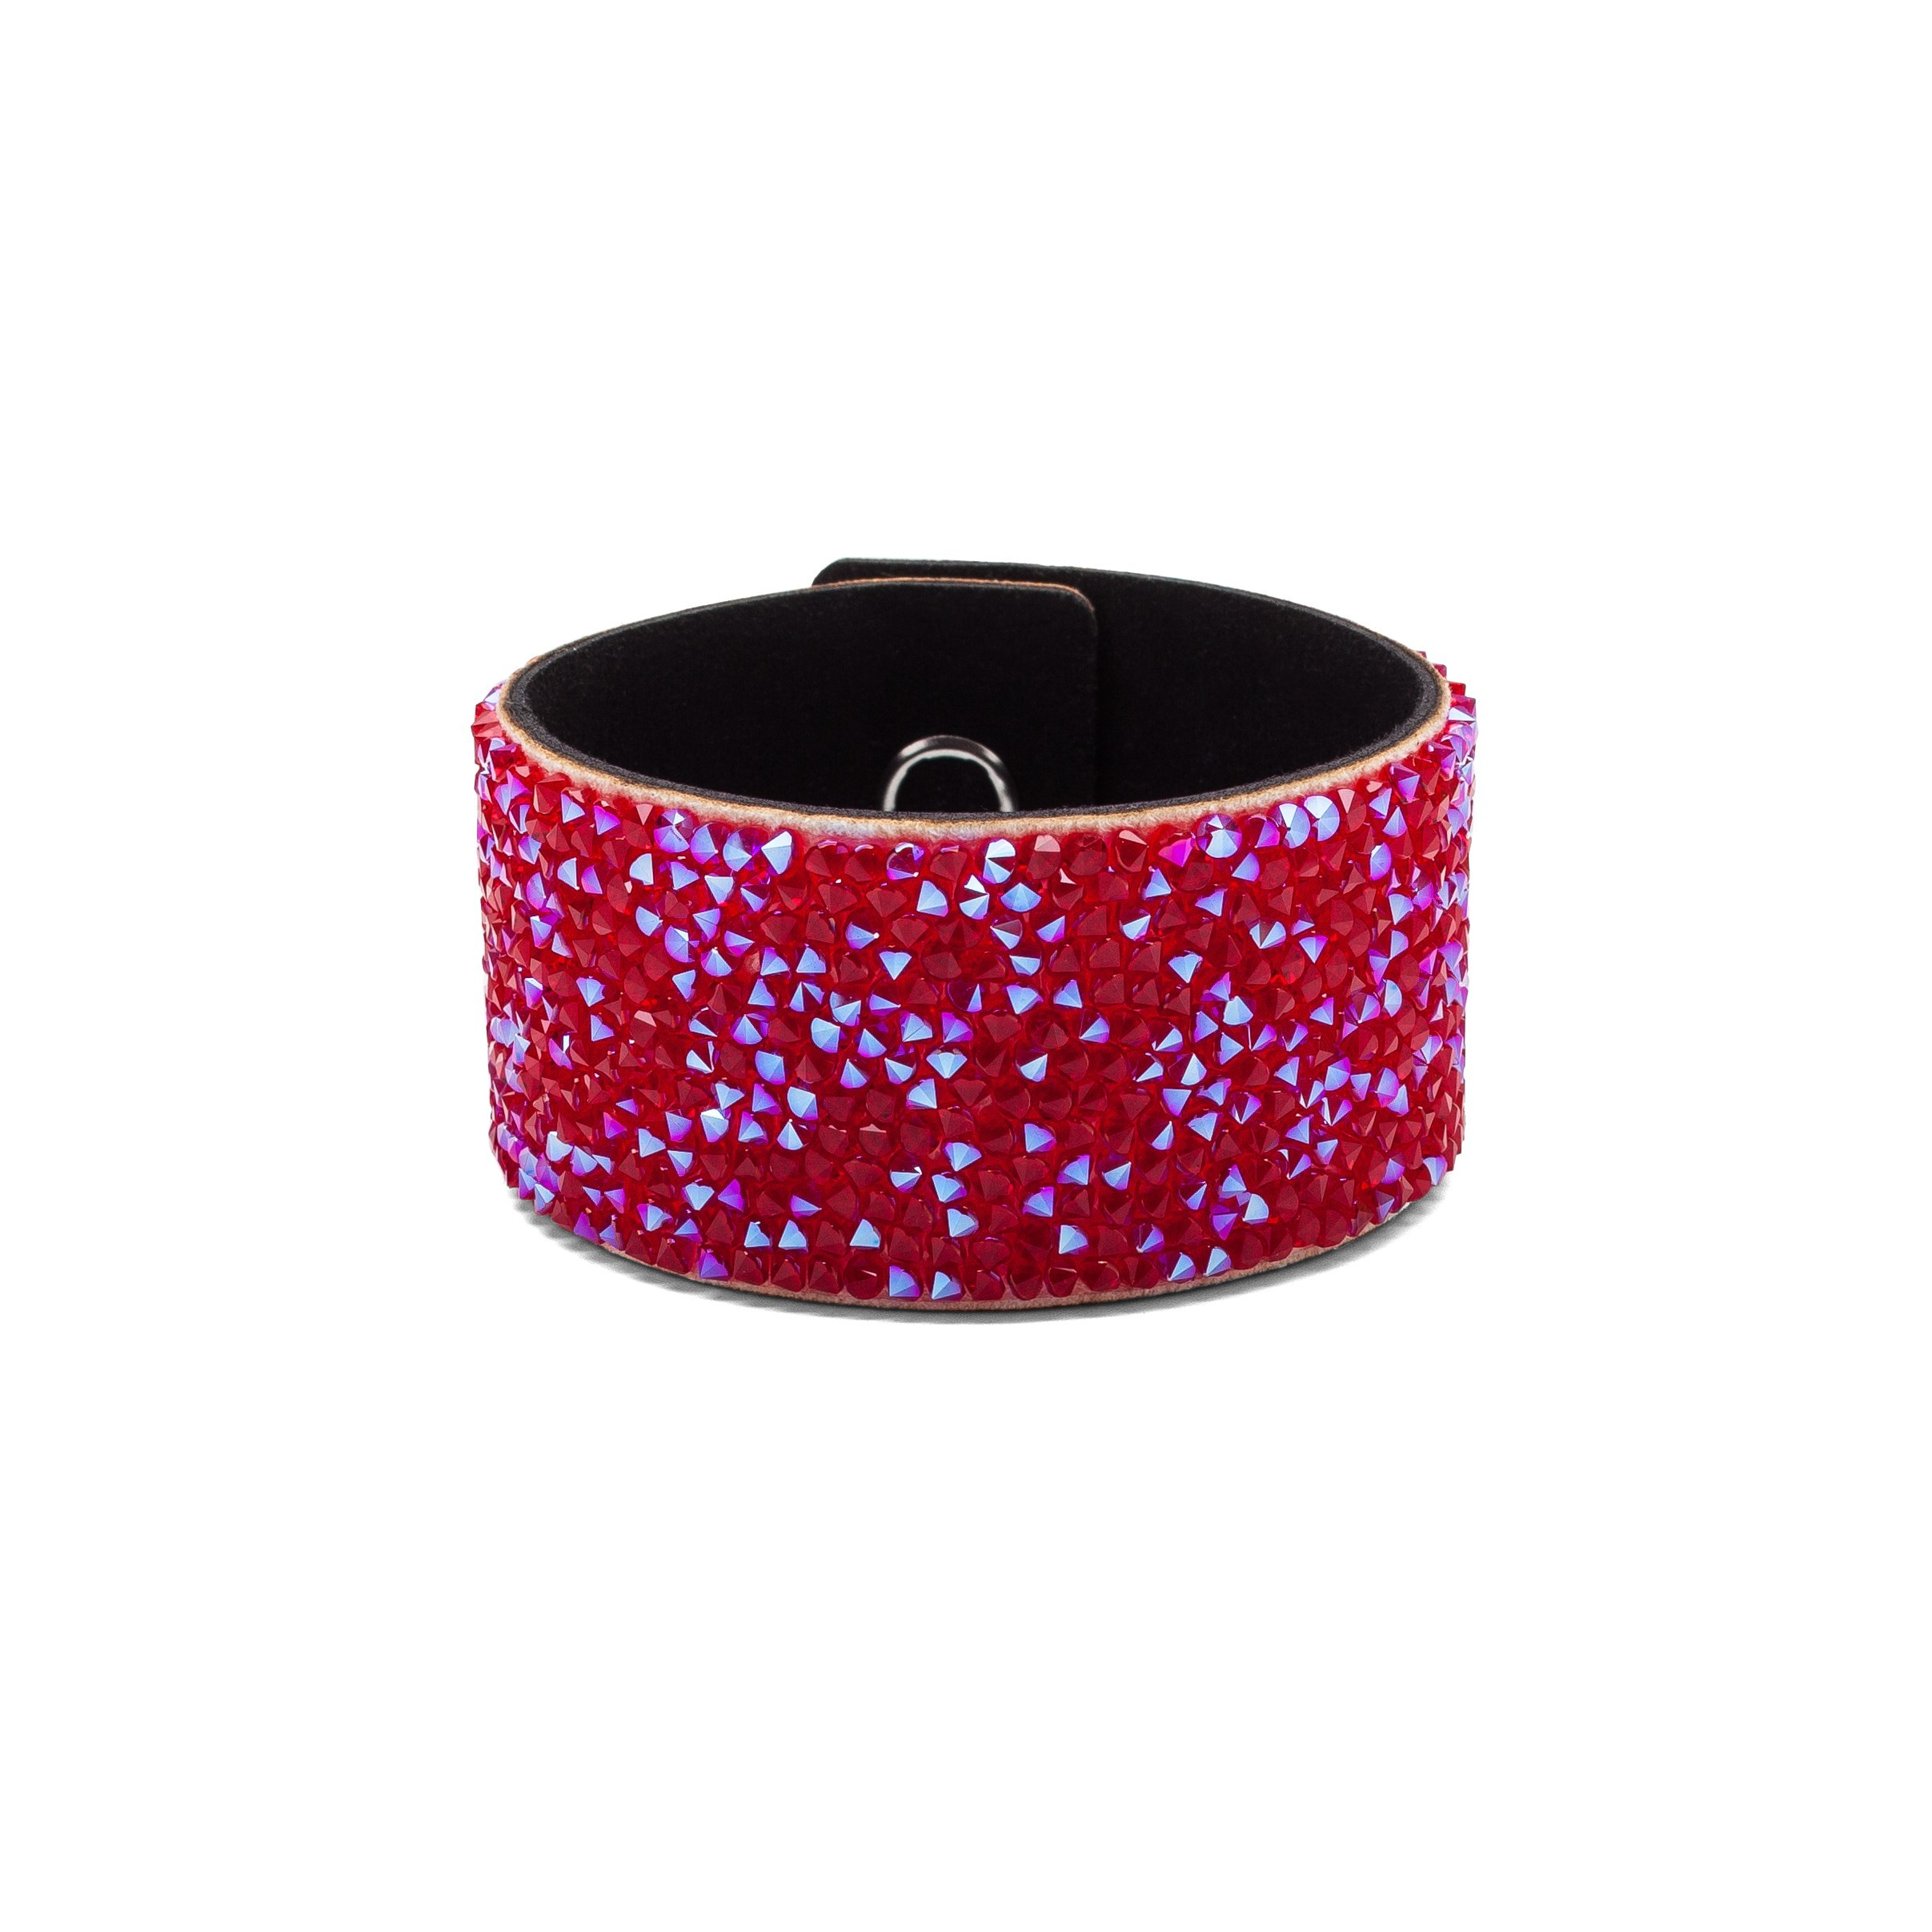 BRACELET WITH ALCANTARA AND SWAROVSKI CRYSTAL ROCKS – MODEL 16